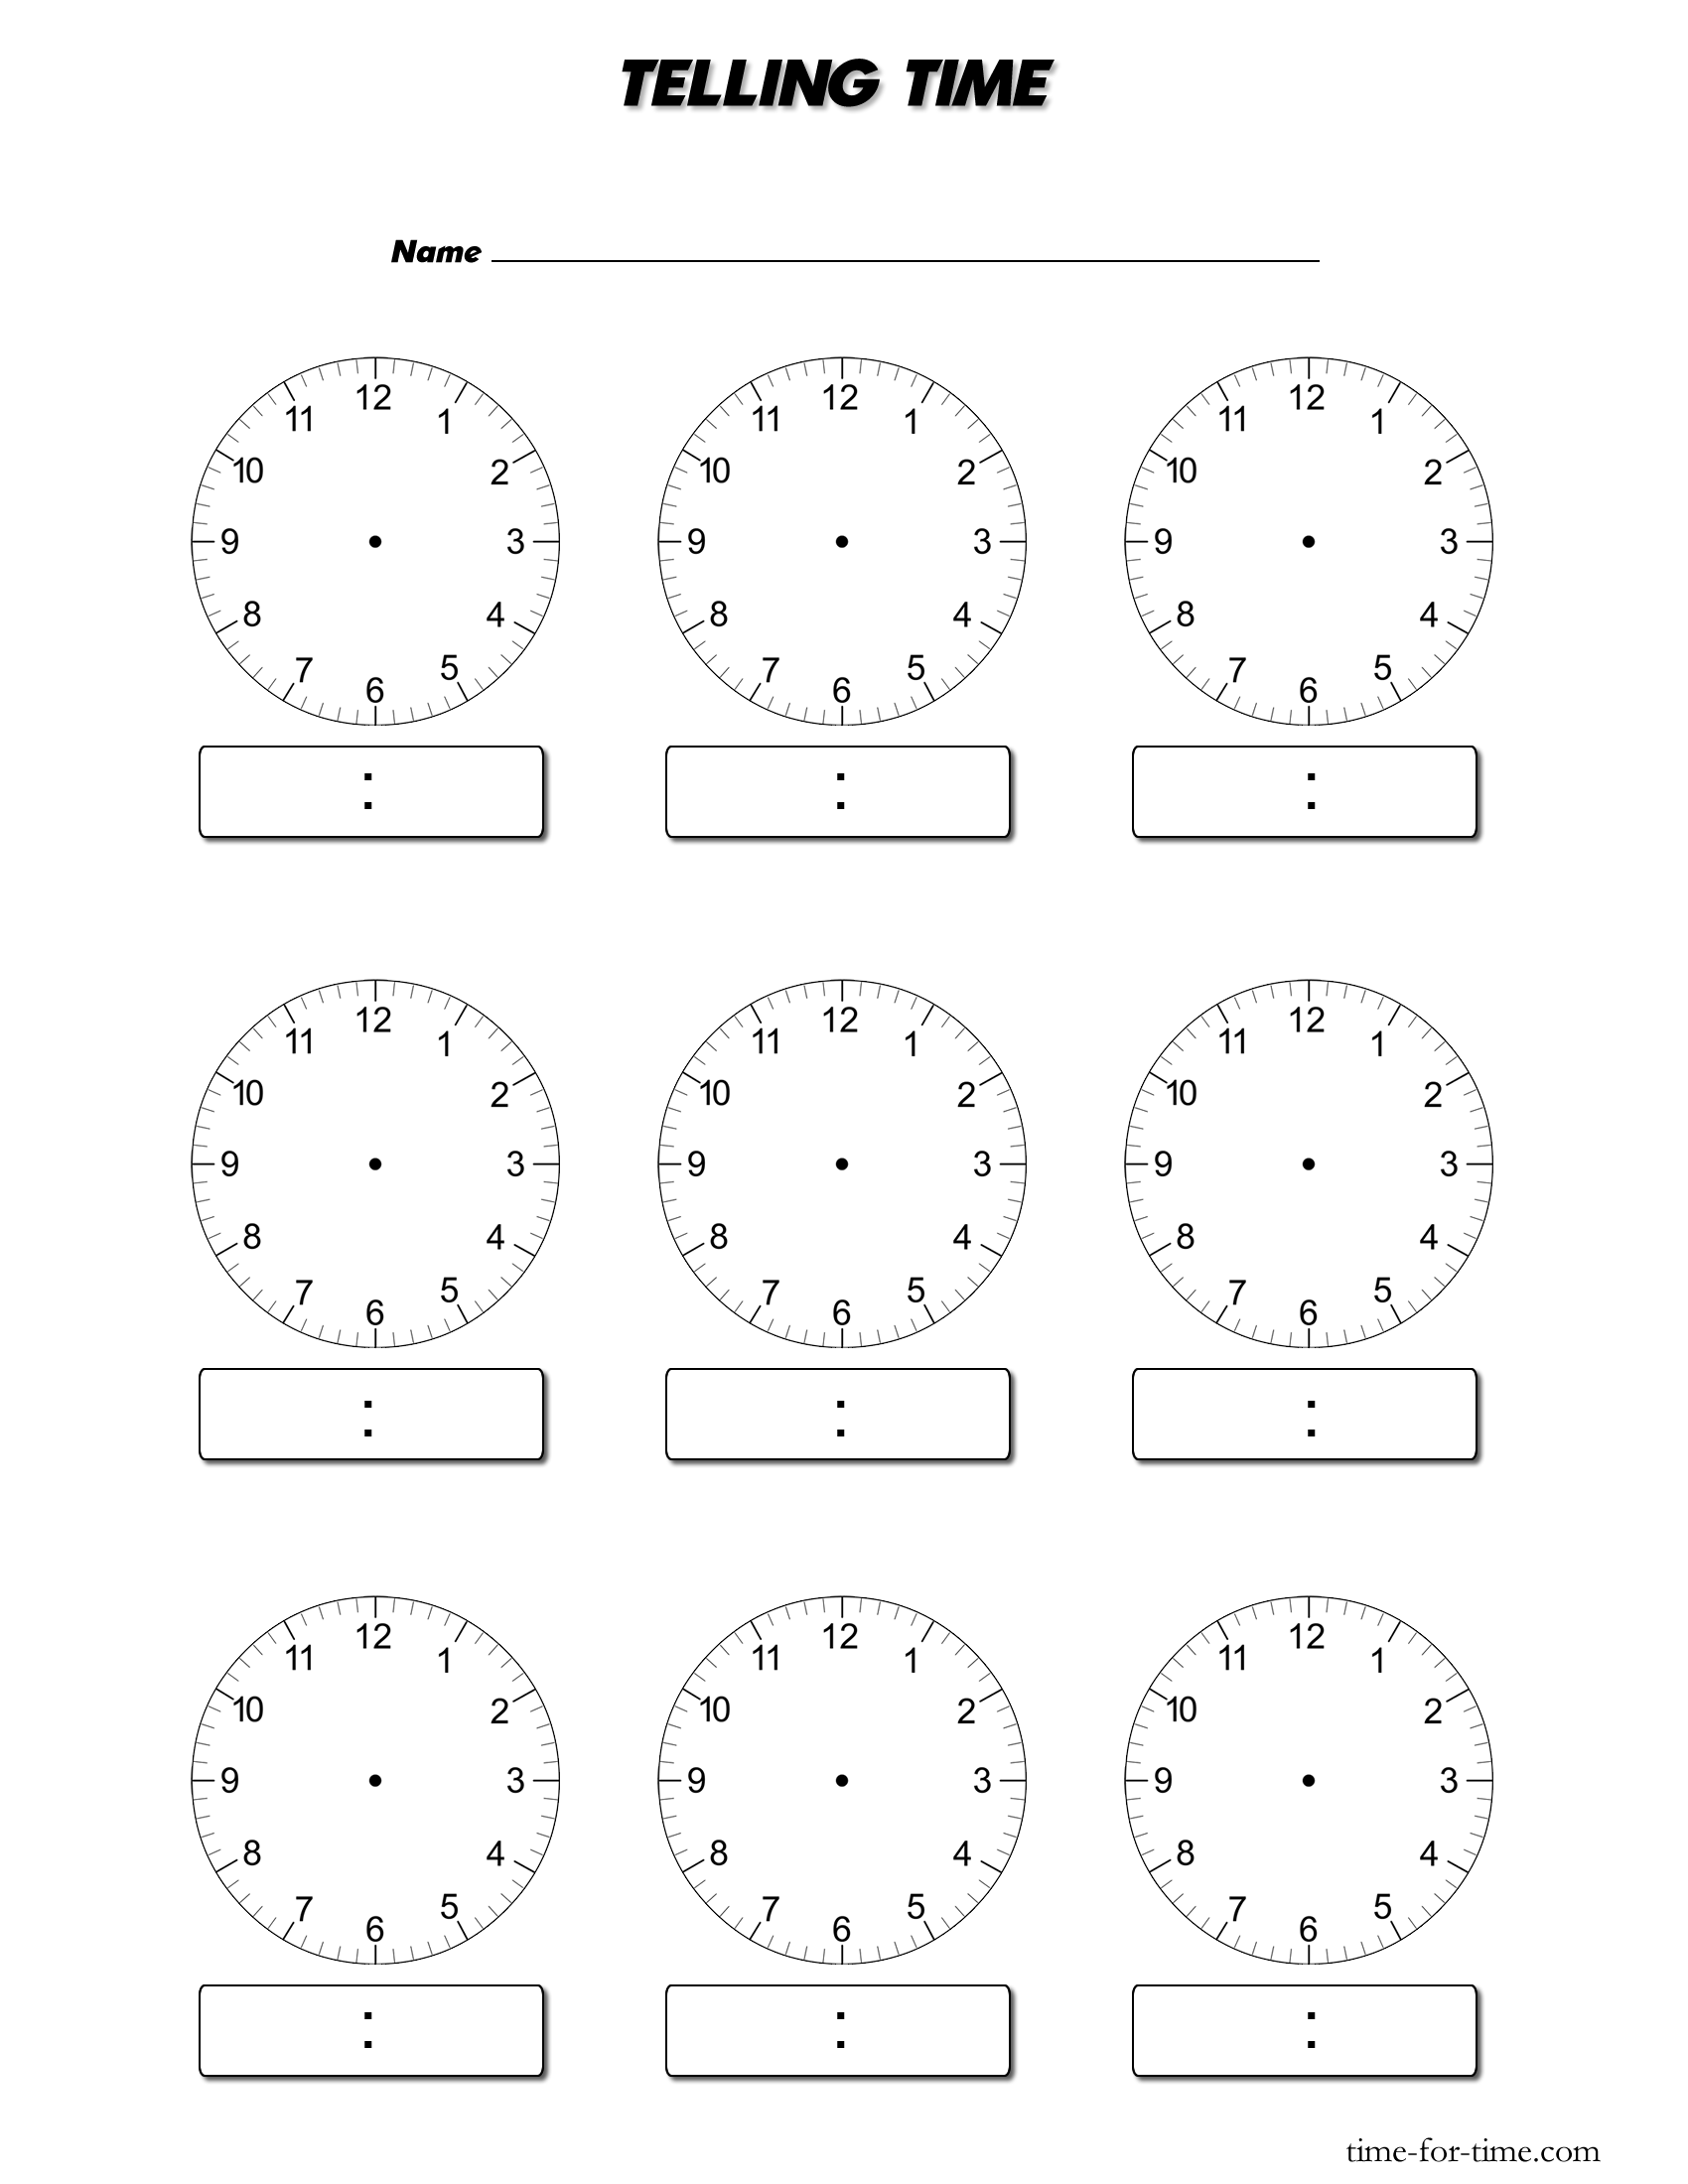 blank clock face worksheet blank clocks worksheet teacher 39 s corner clock worksheets blank. Black Bedroom Furniture Sets. Home Design Ideas